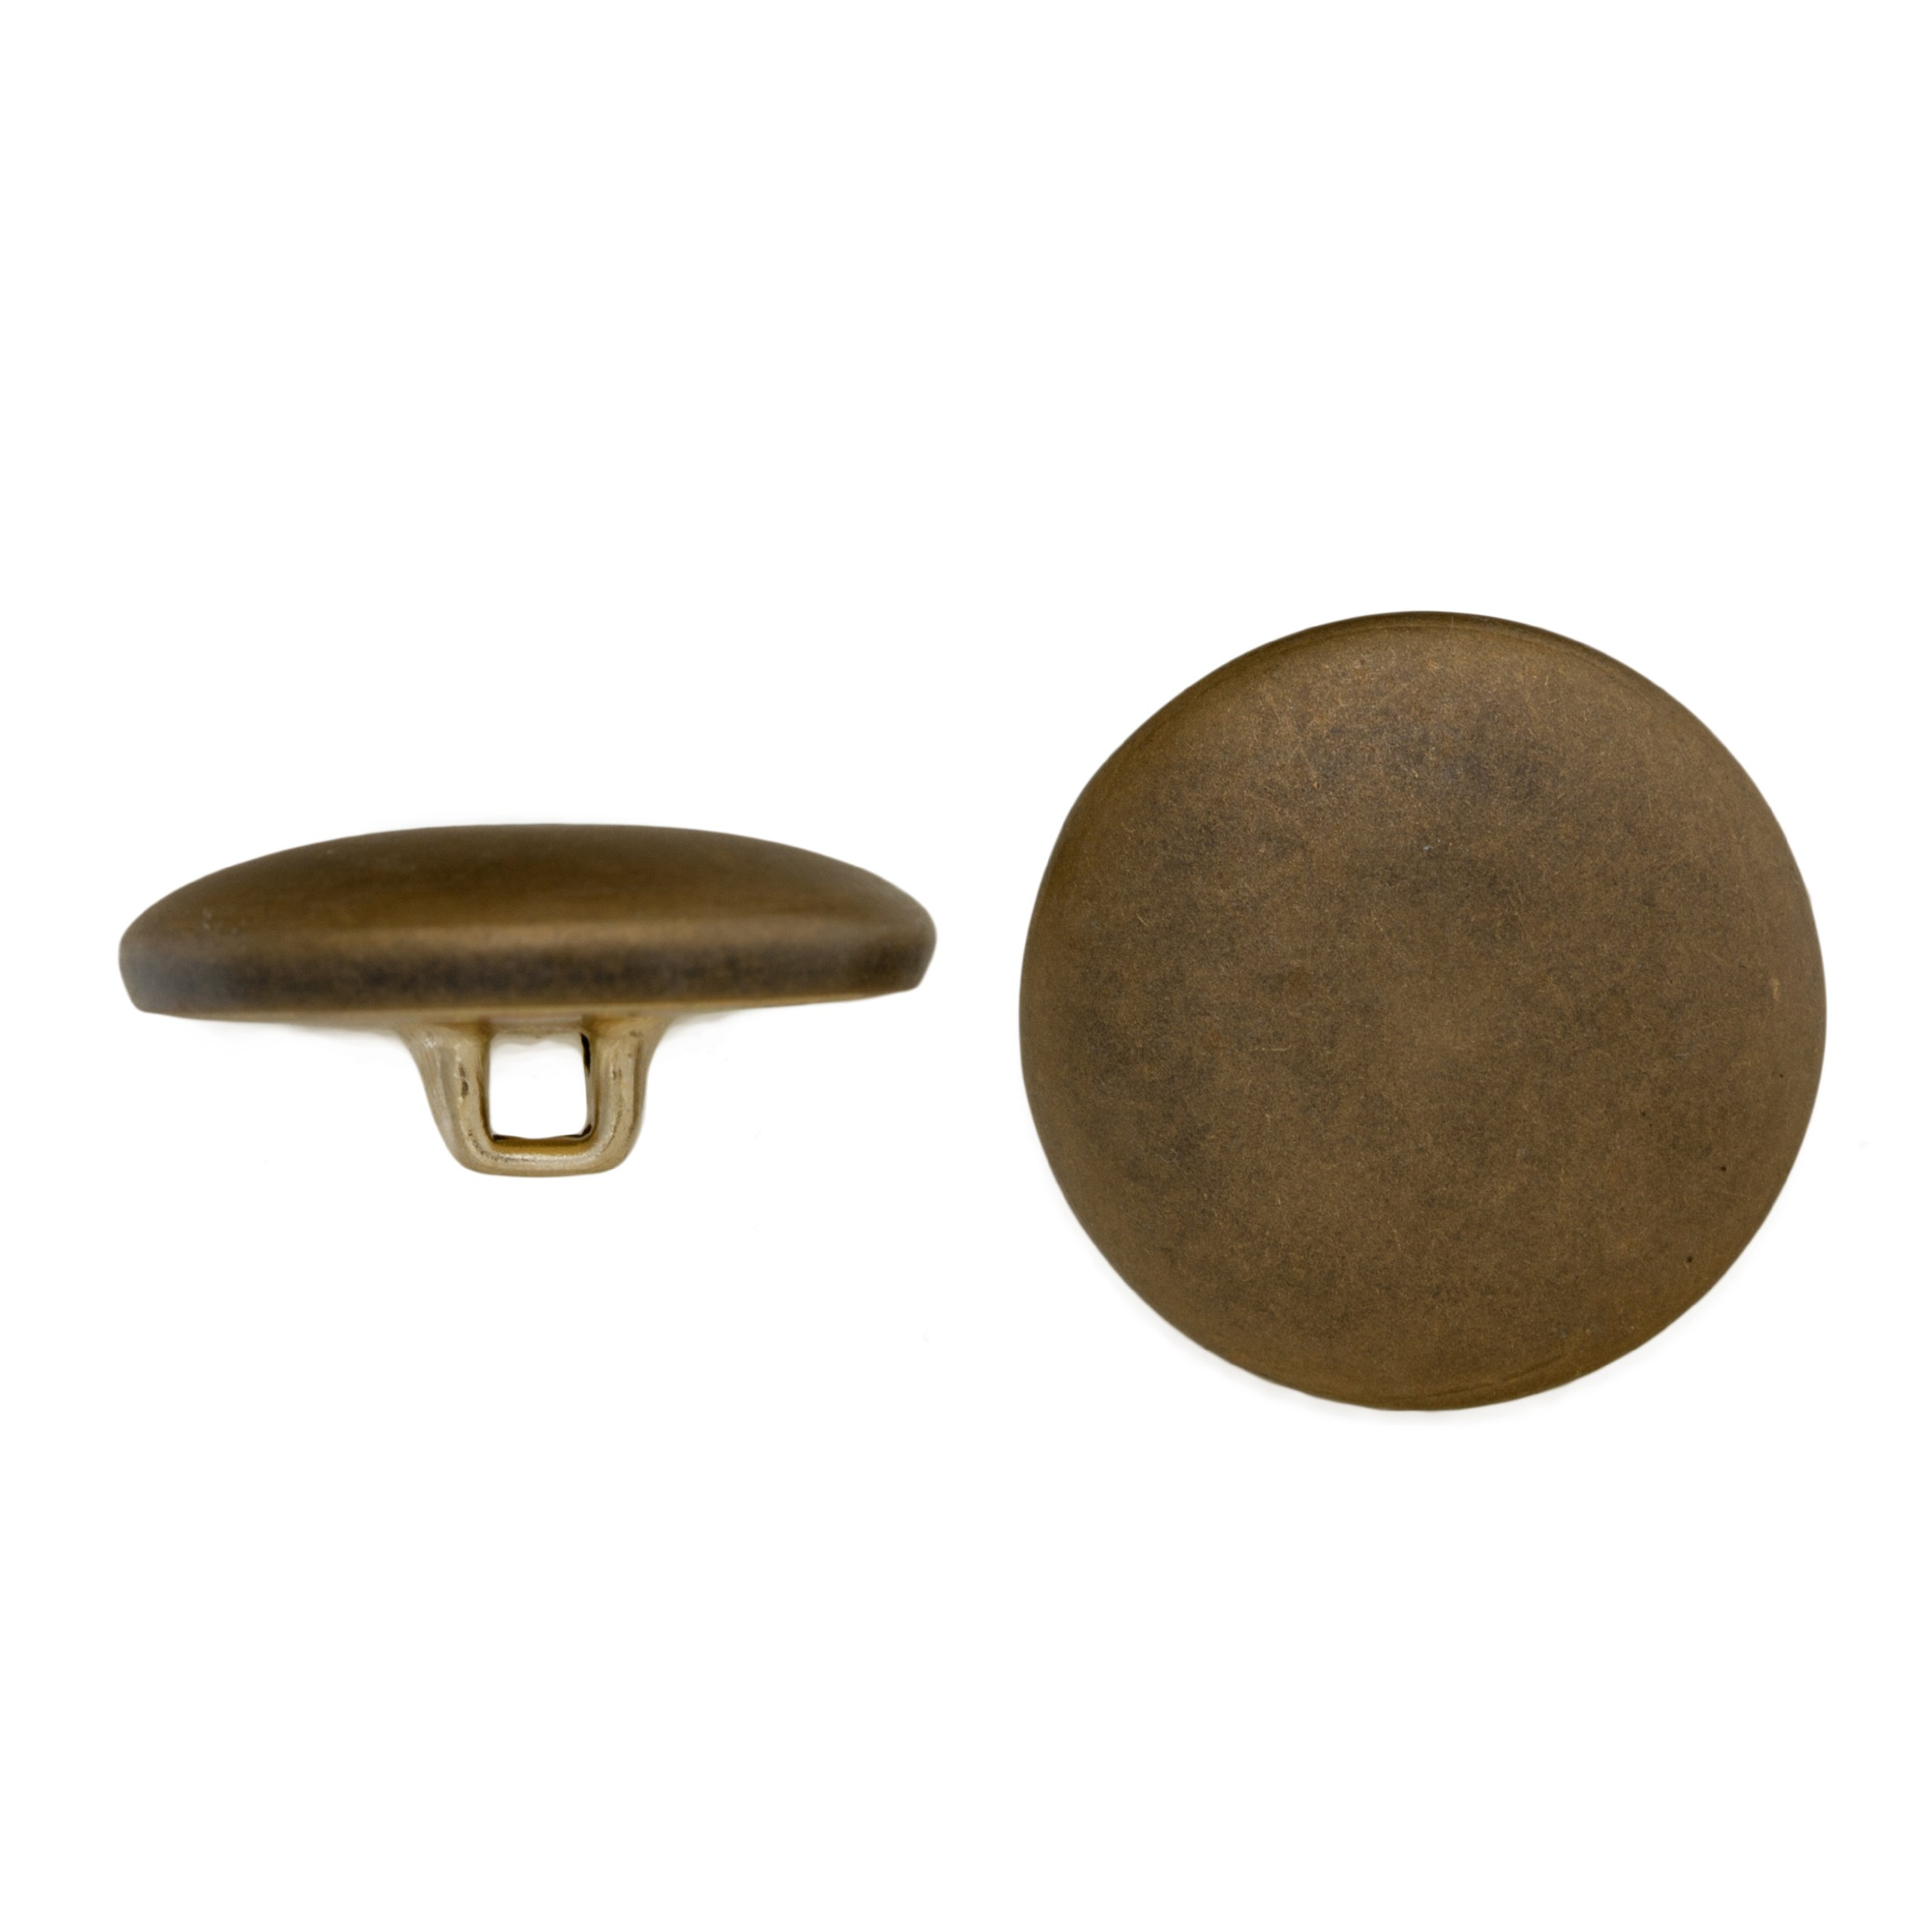 C&C Metal Products Corp 5003 Half Dome Metal Button, Size 20, Colonial Gold Finish, 72-Piece